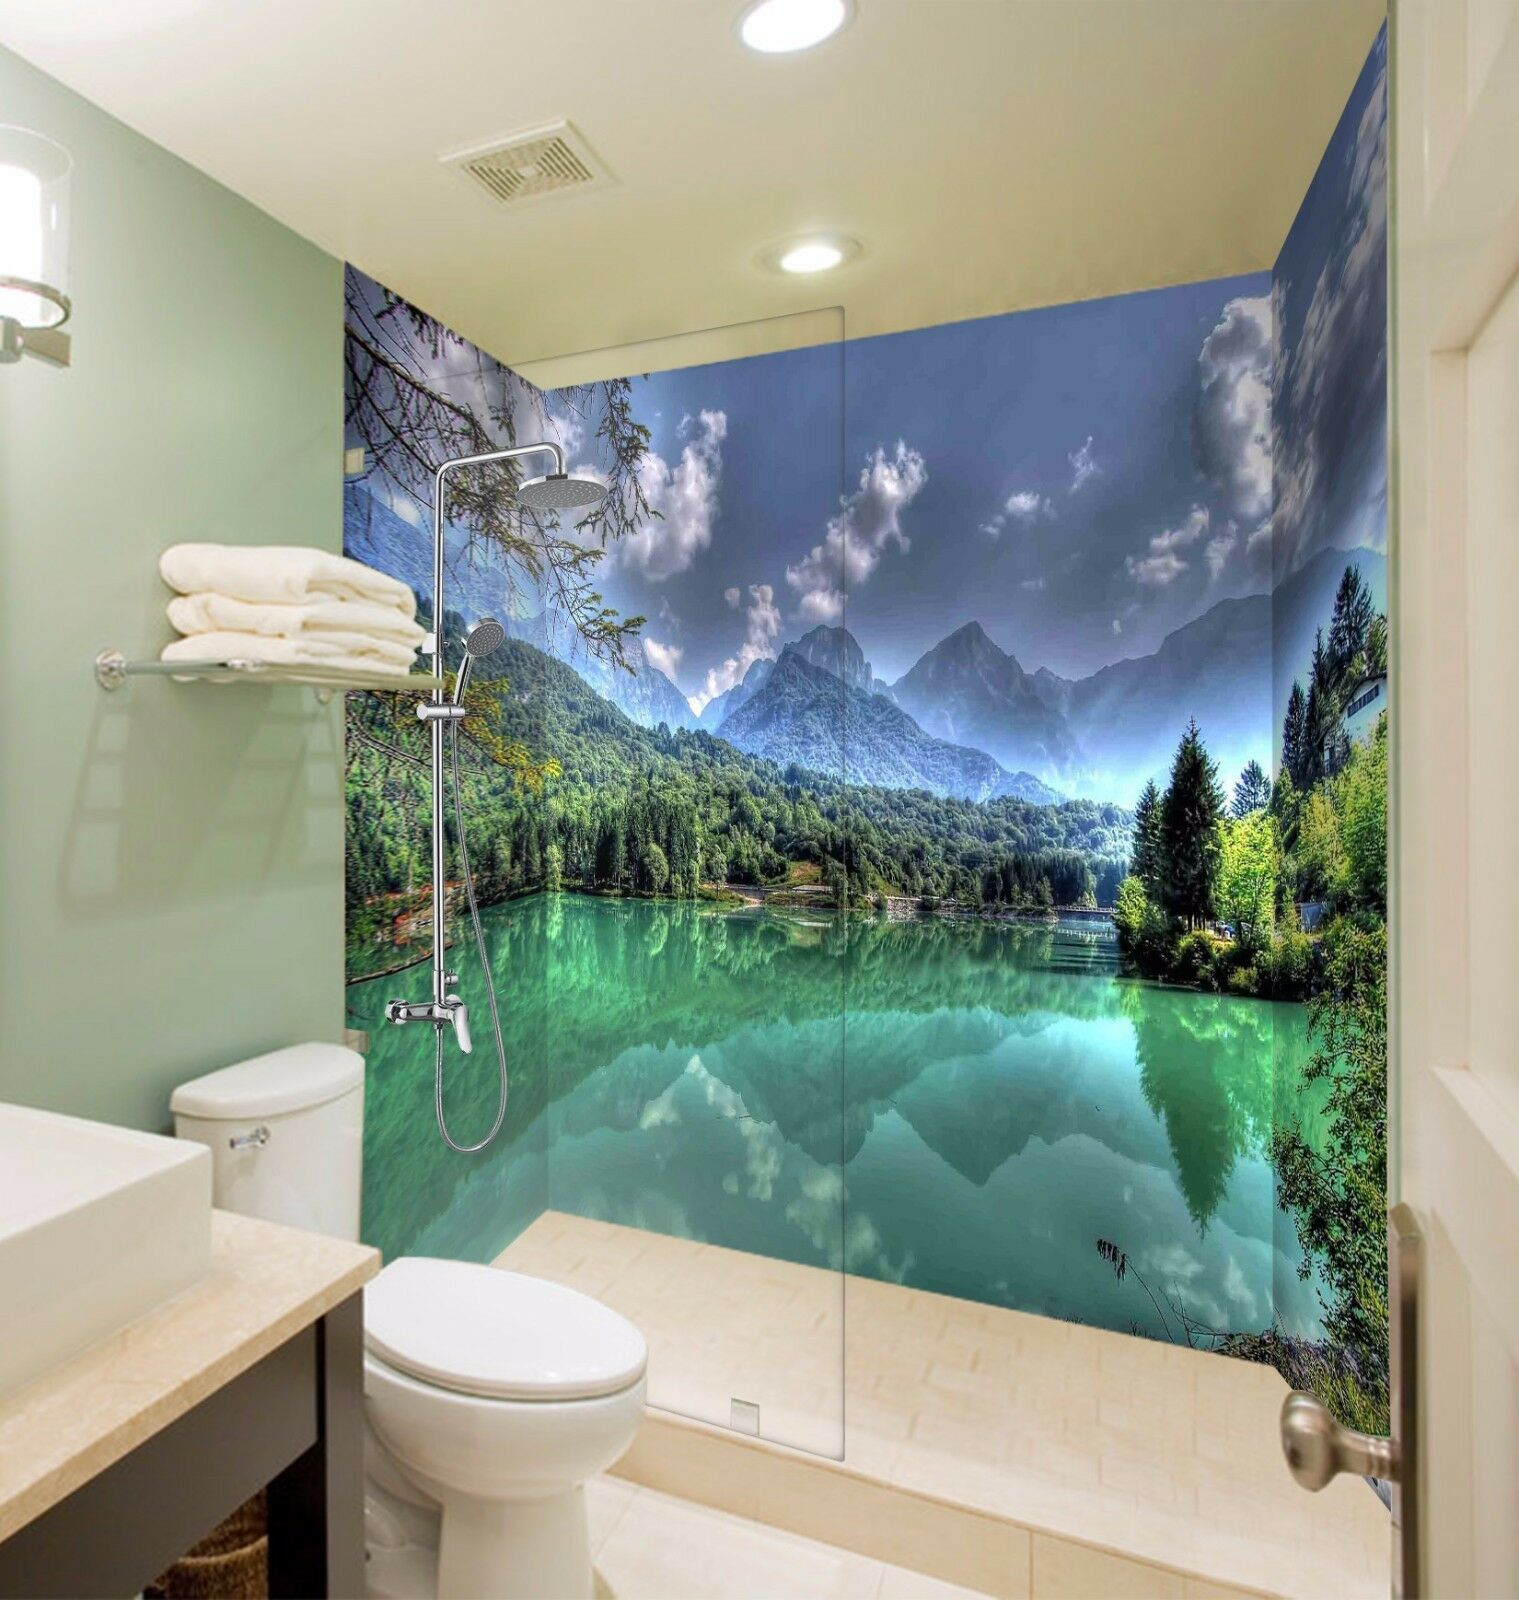 3D 3D 3D Mountain River 433 WallPaper Bathroom Print Decal Wall Deco AJ WALLPAPER AU a1e71d